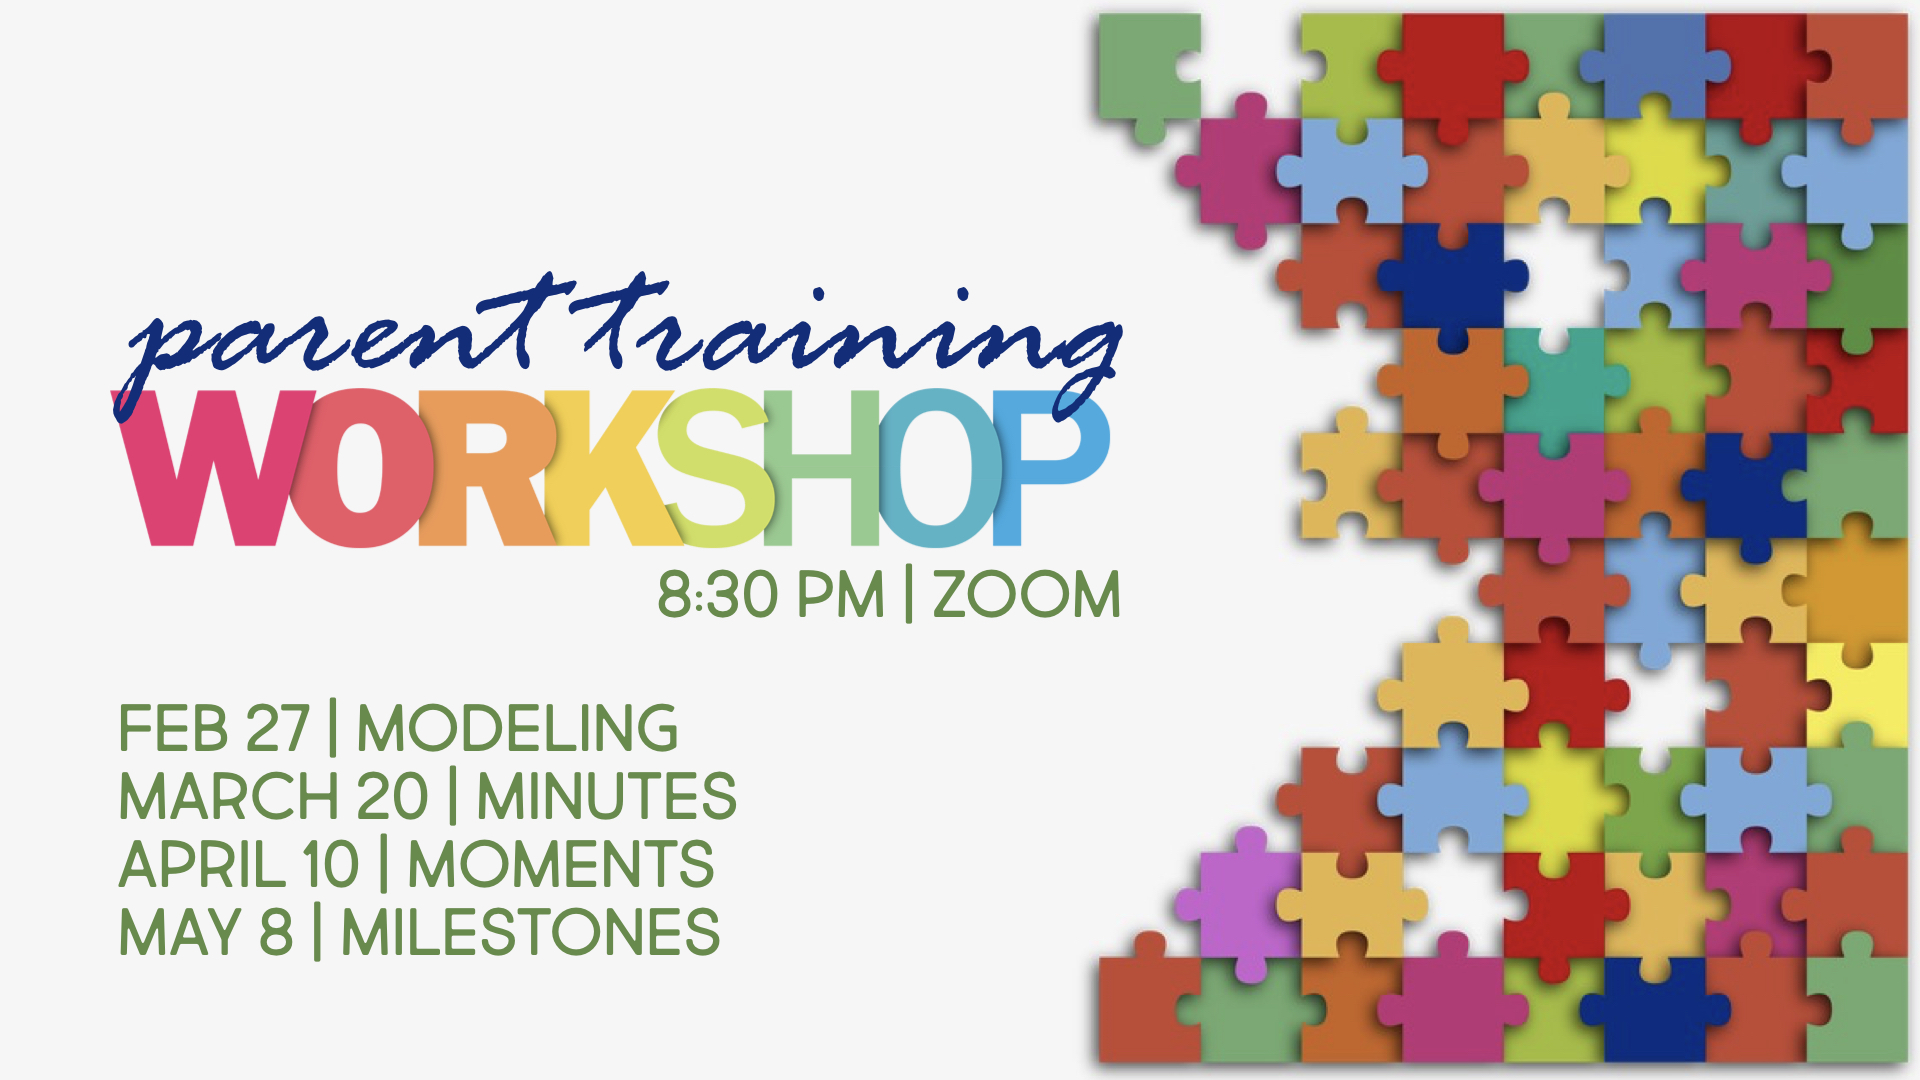 Mark your calendar, Wednesday, May 8th, we have our last parent training on milestones. It's going to be good and new, hope to see you on Zoom!